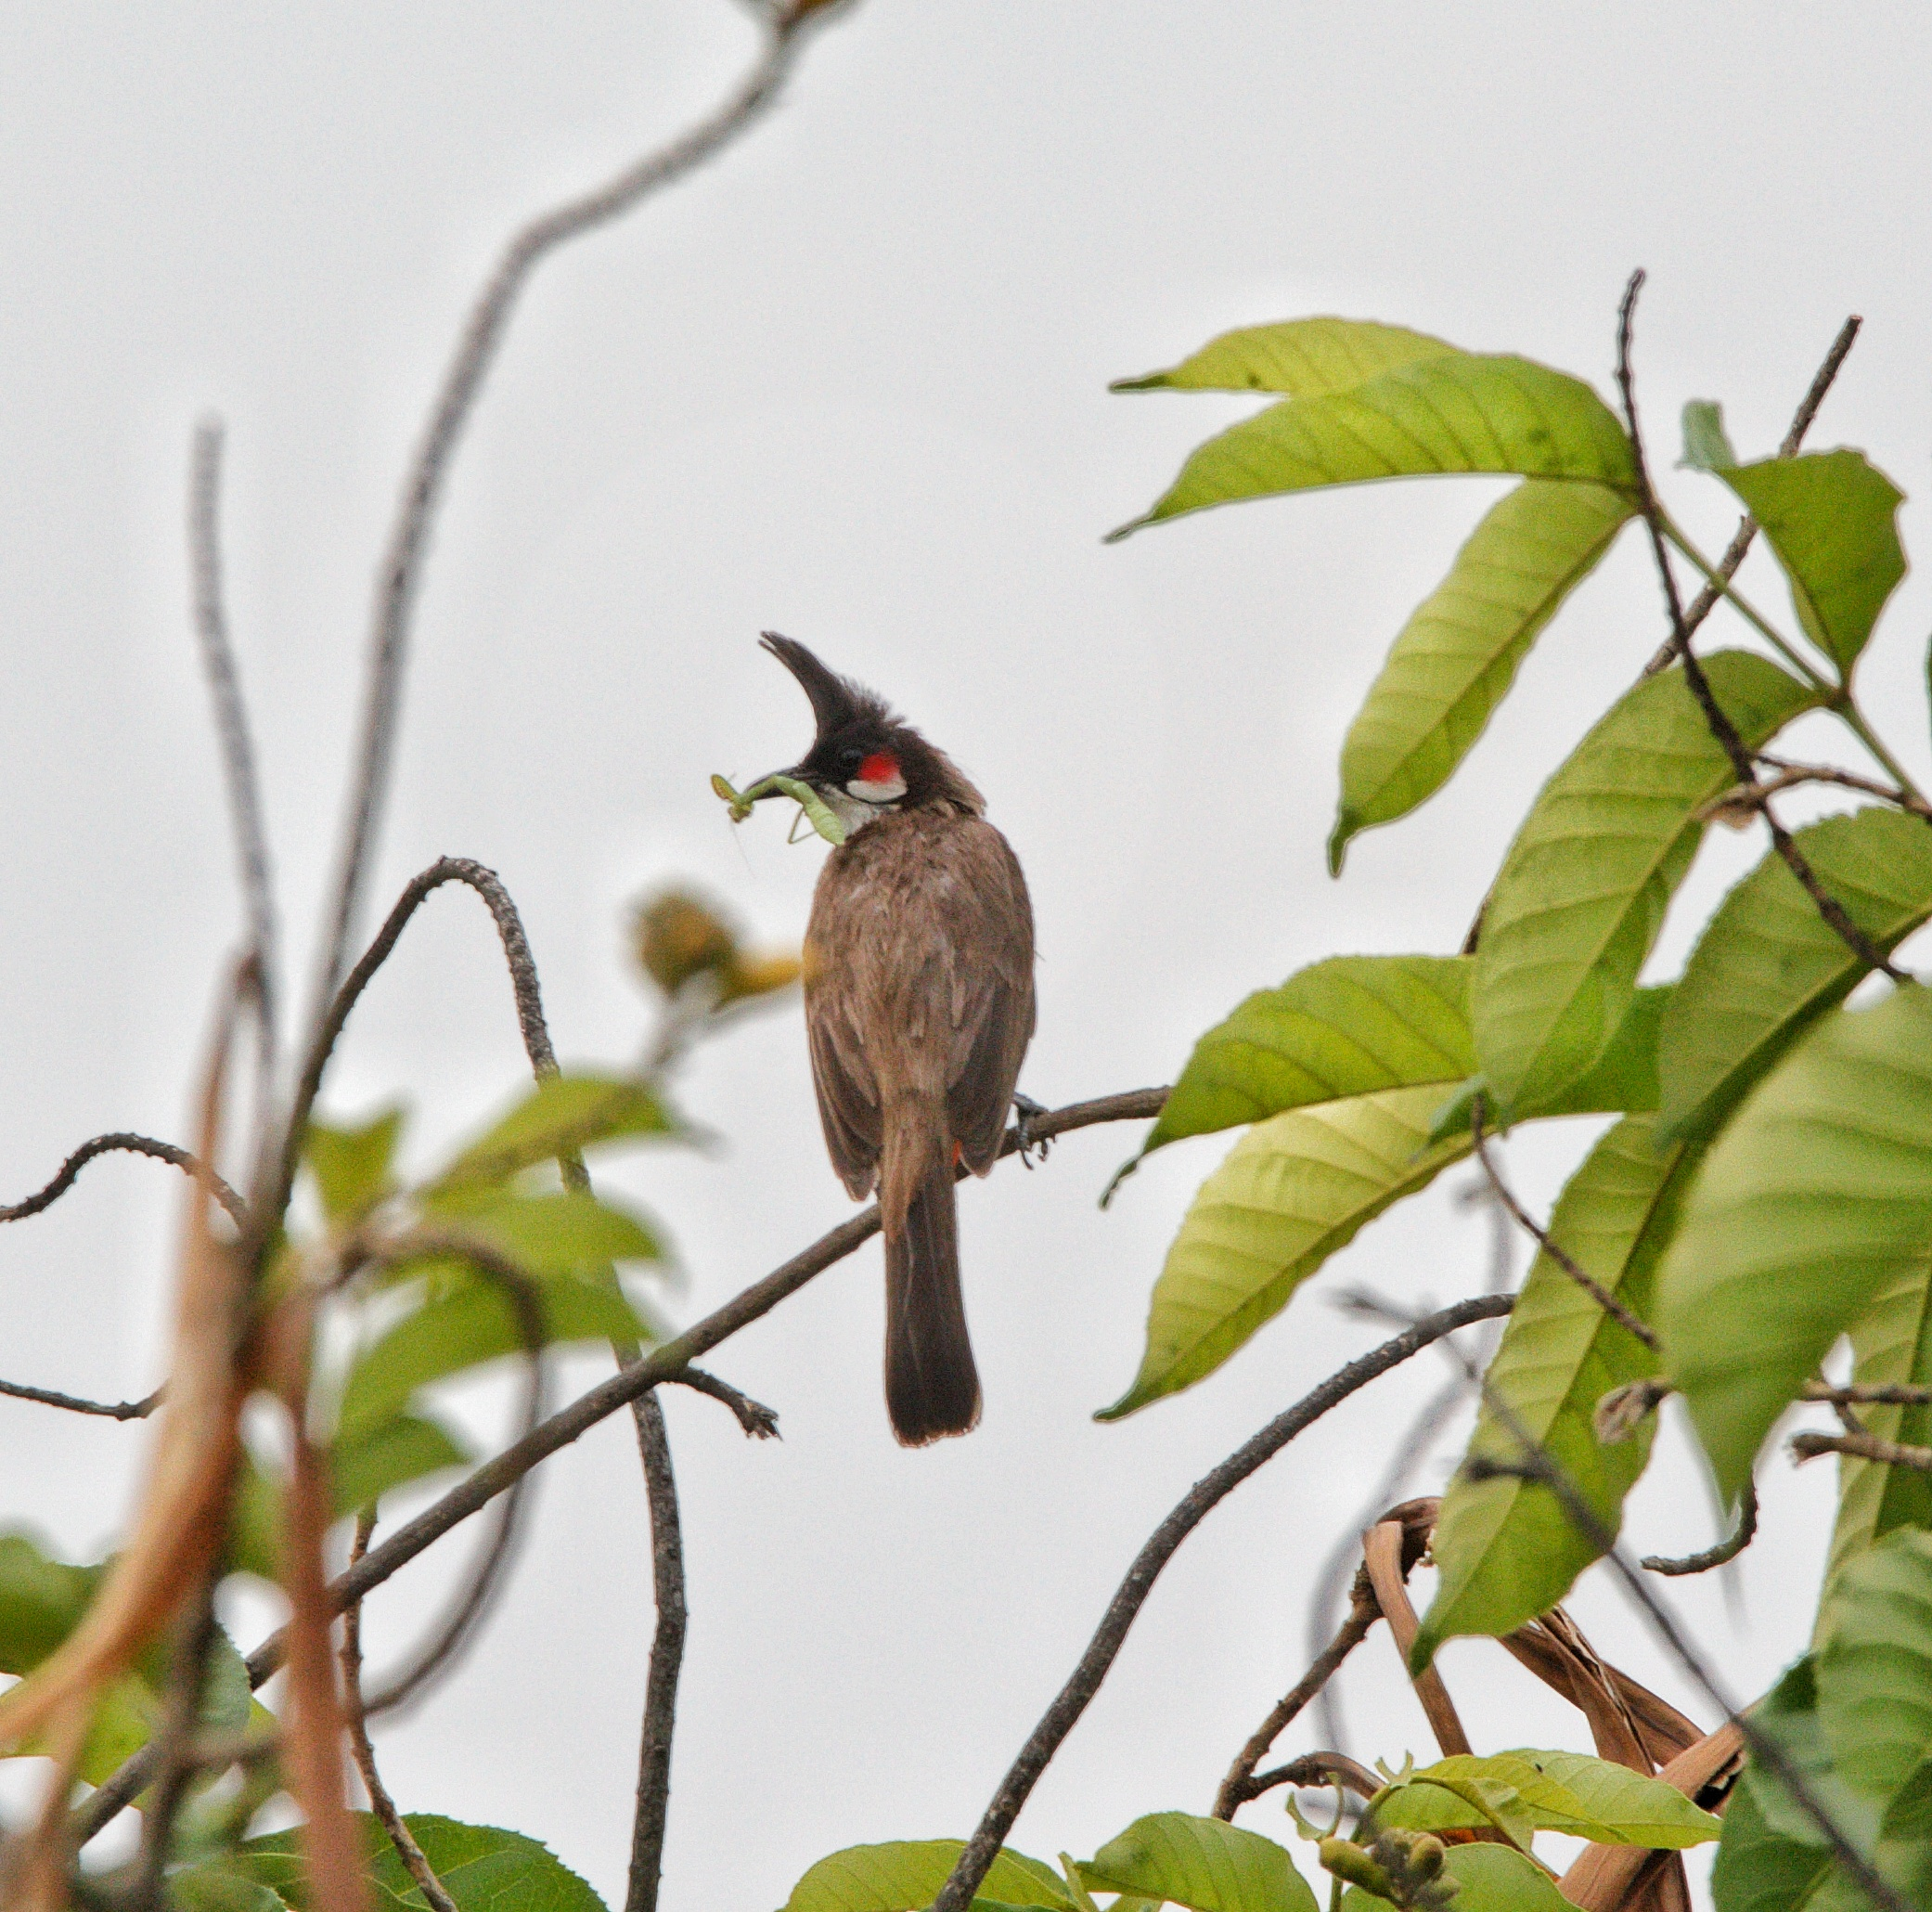 Bulbul bird on a branch